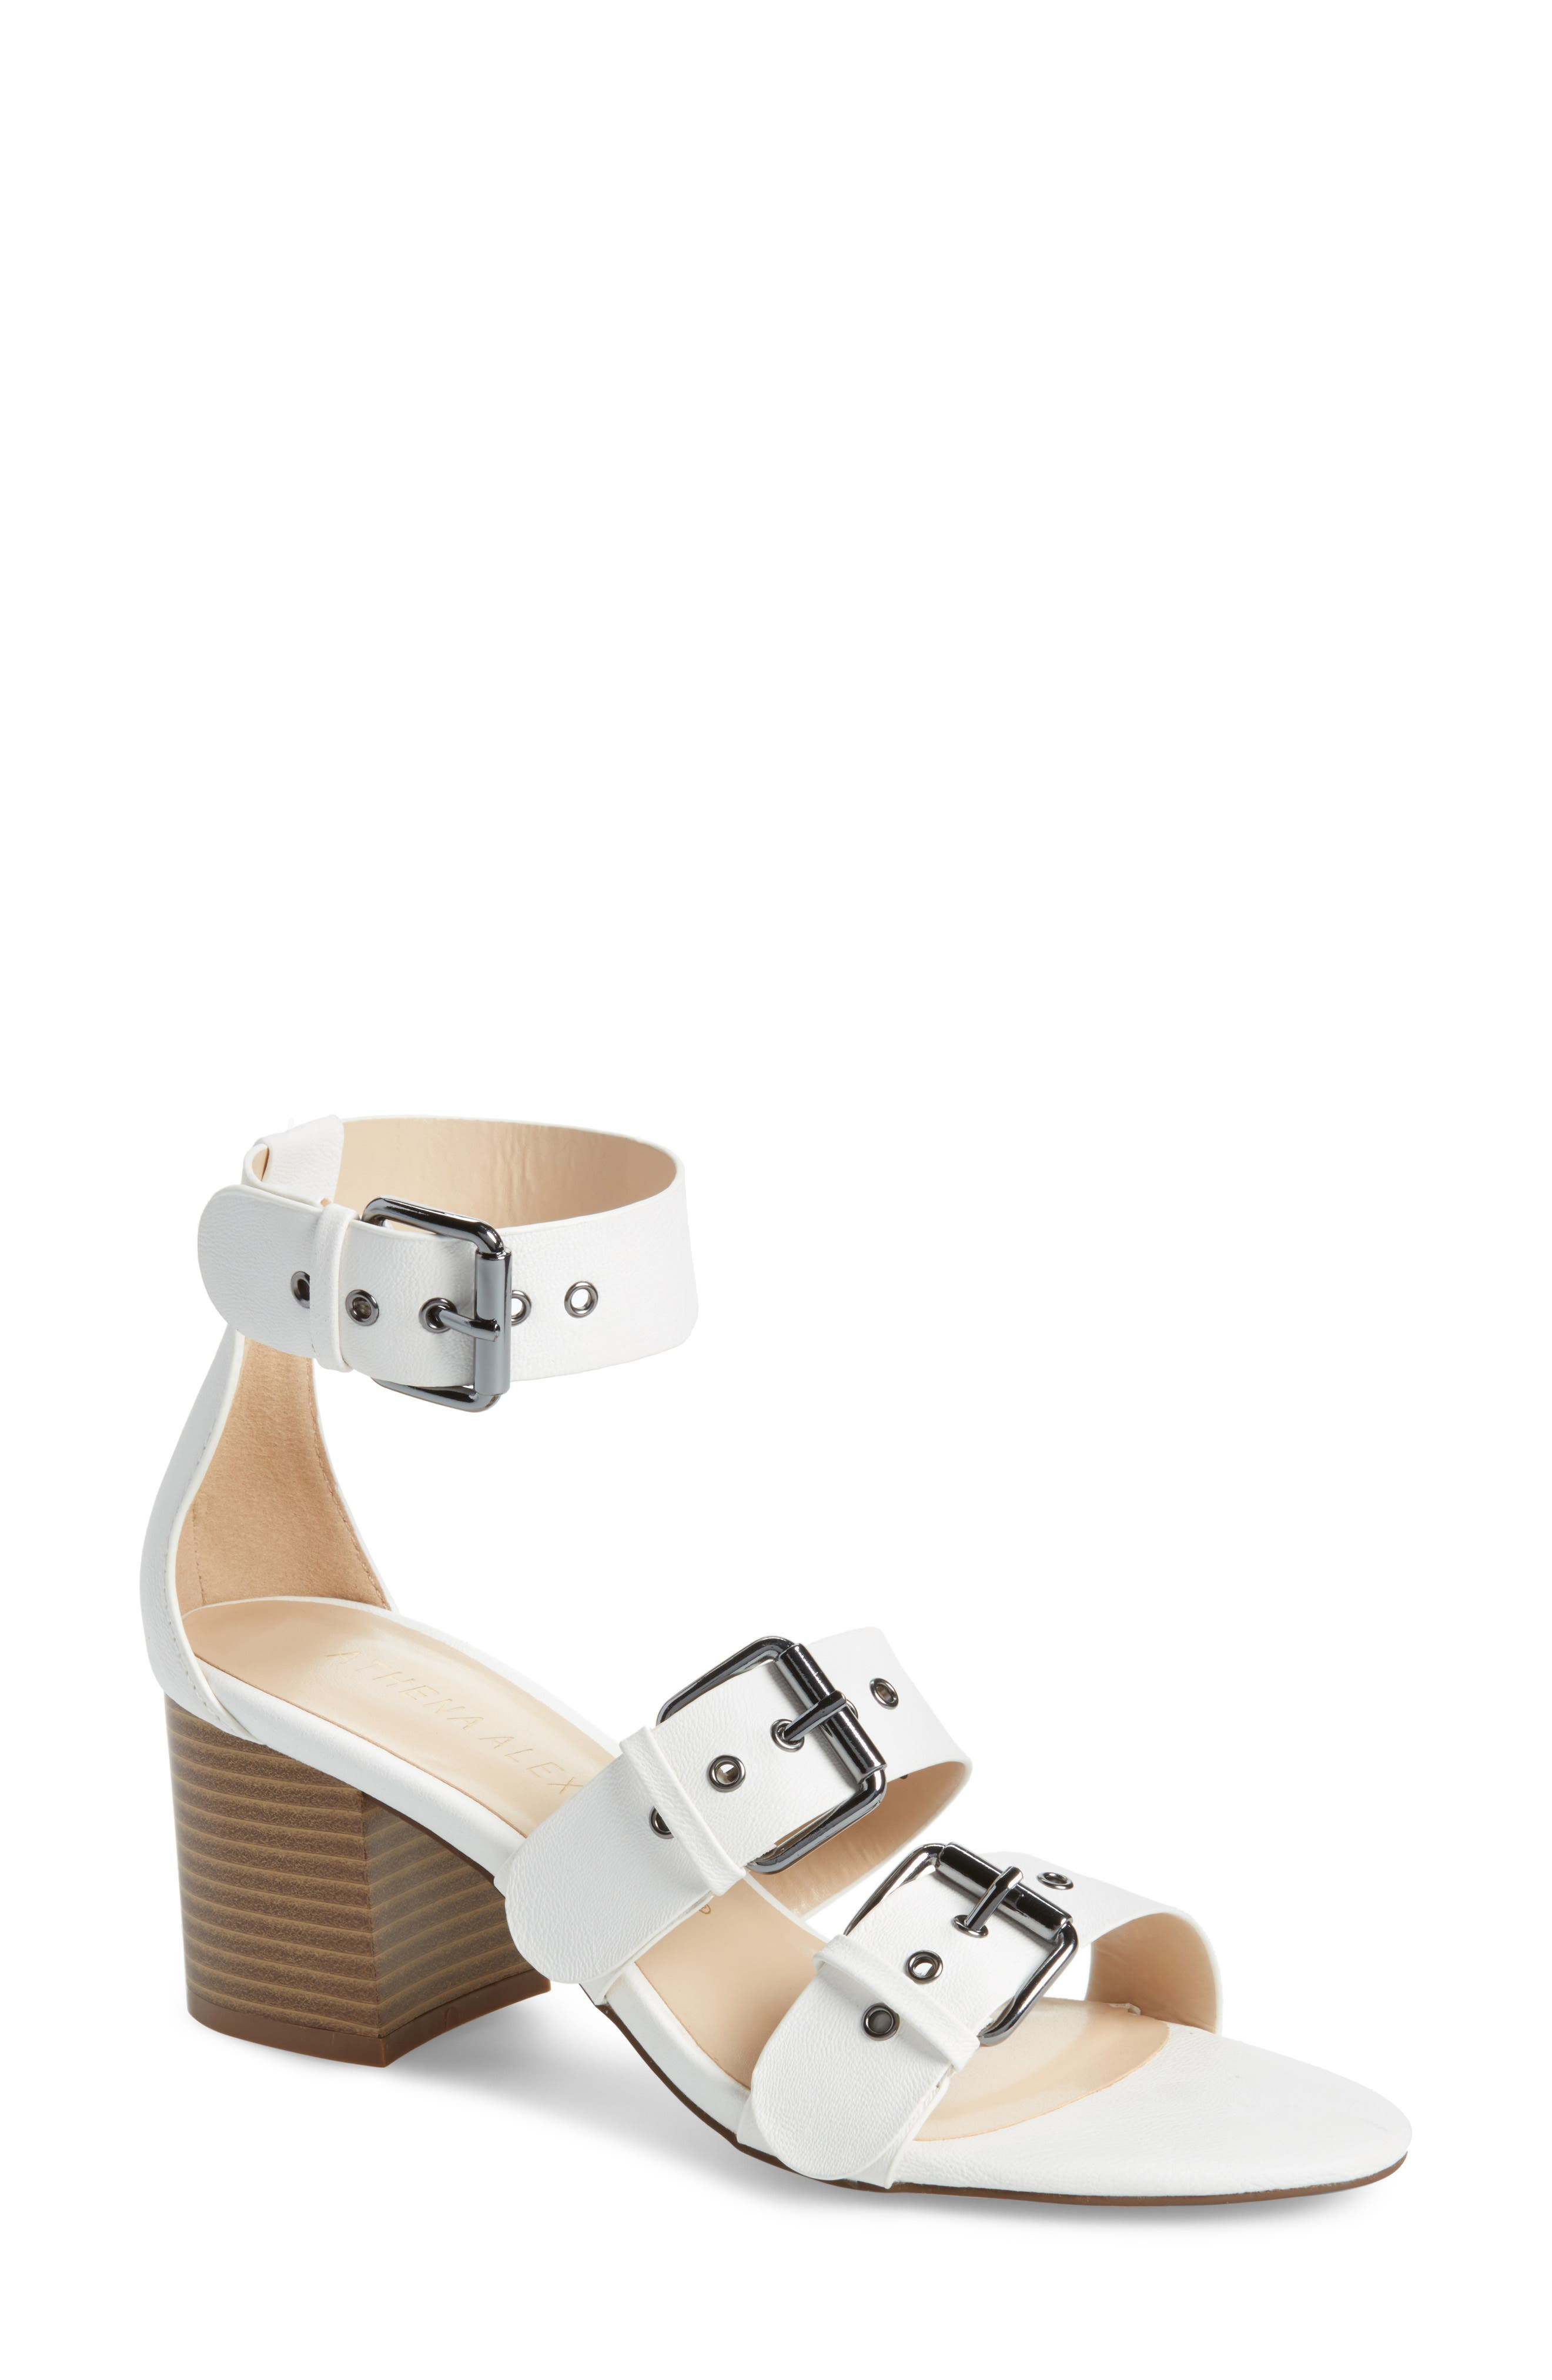 Womens Athena Alexander Londen Sandals White NGS74100